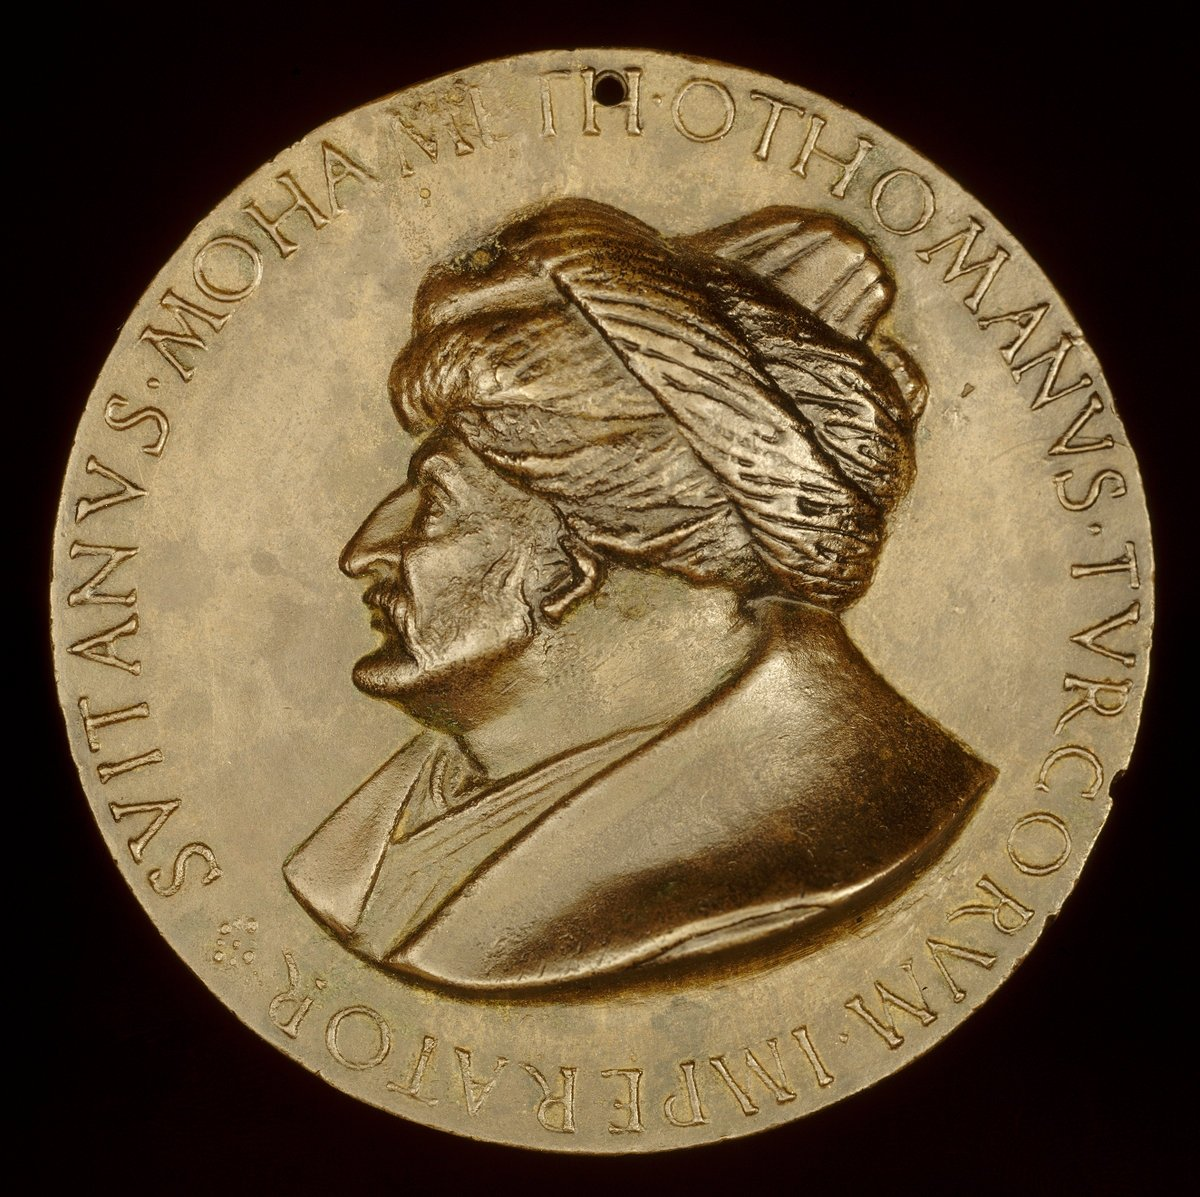 A European bronze medal from the period of Sultan Mehmed the Conqueror, 1481. (Wikimedia Photo)